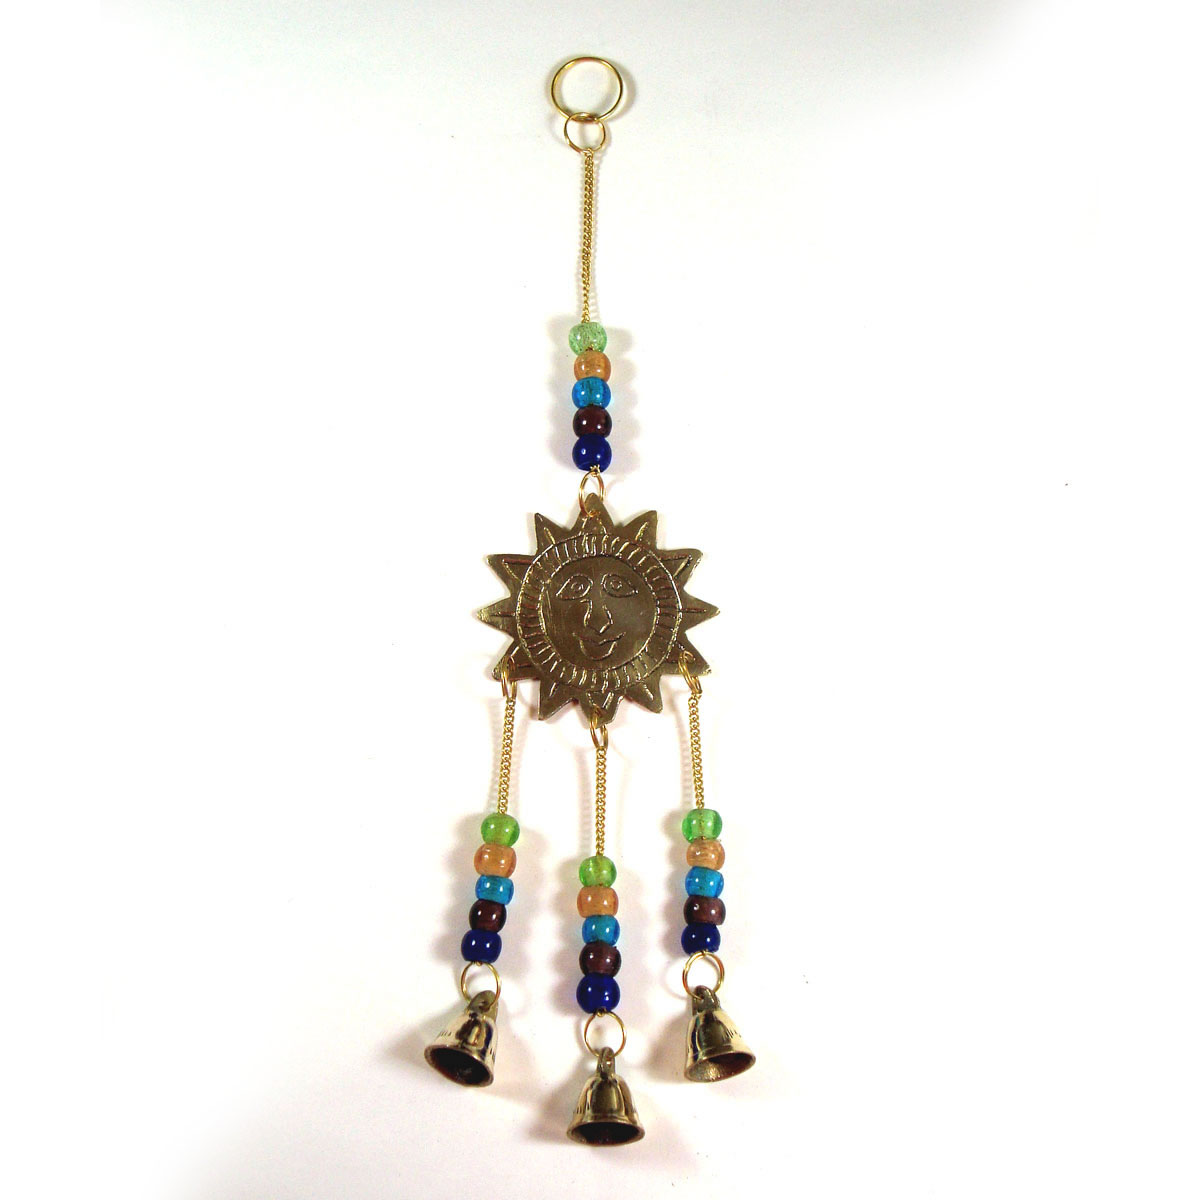 Brass Wind Chime with bells - SUN